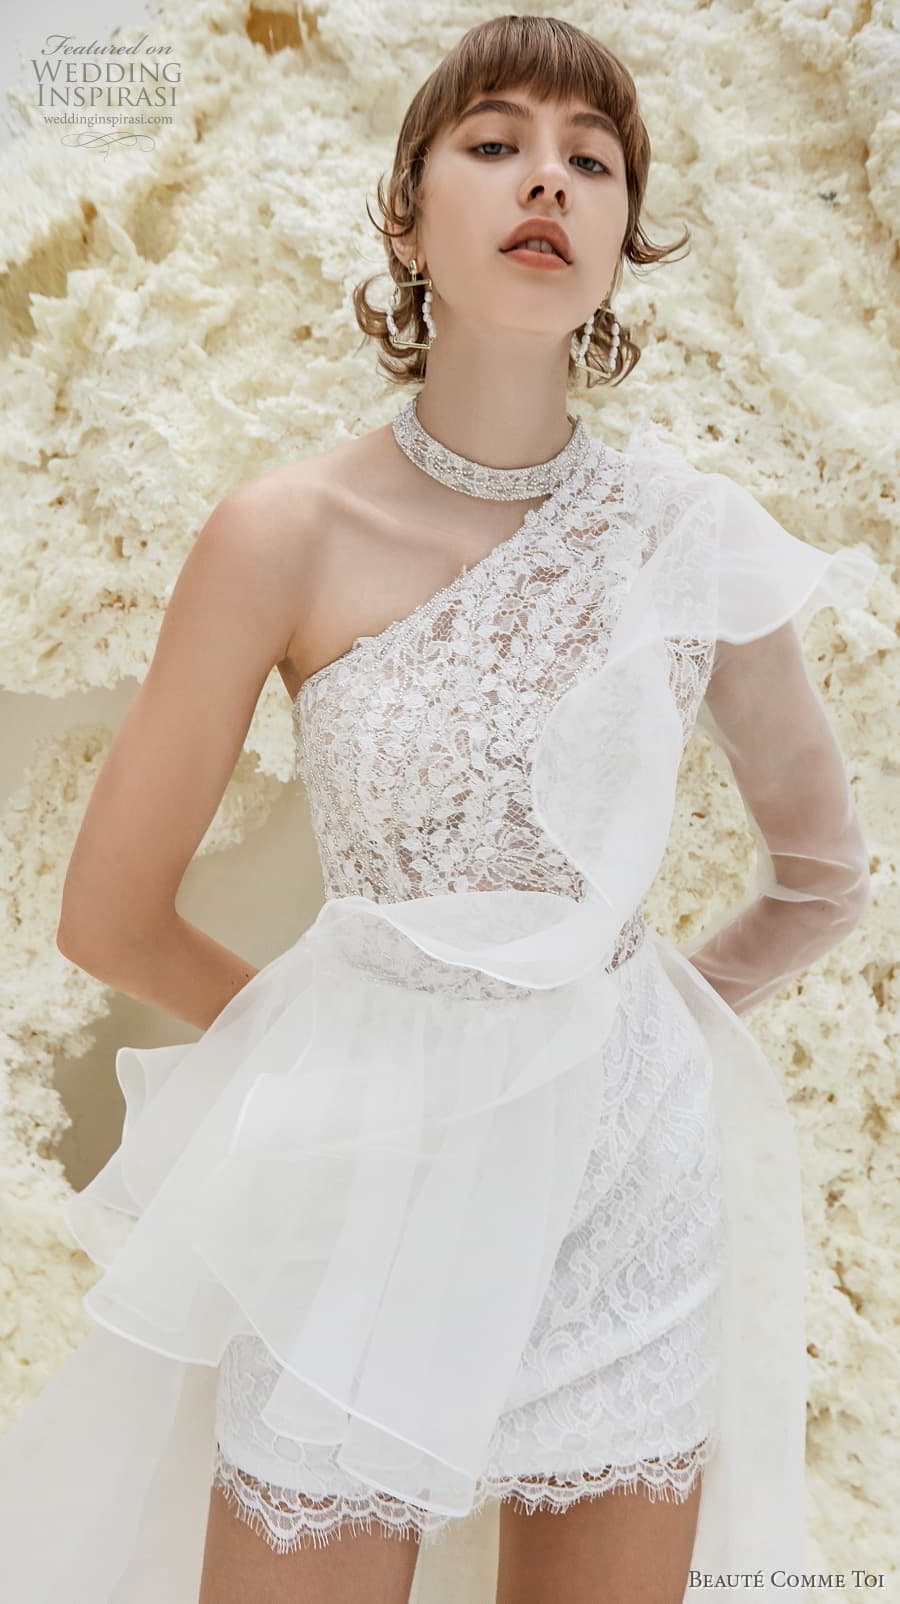 beaute comme toi spring 2022 bridal one shoulder heavily embellished bodice romantic mini short wedding dress a line overskirt chapel train (patricia) zv